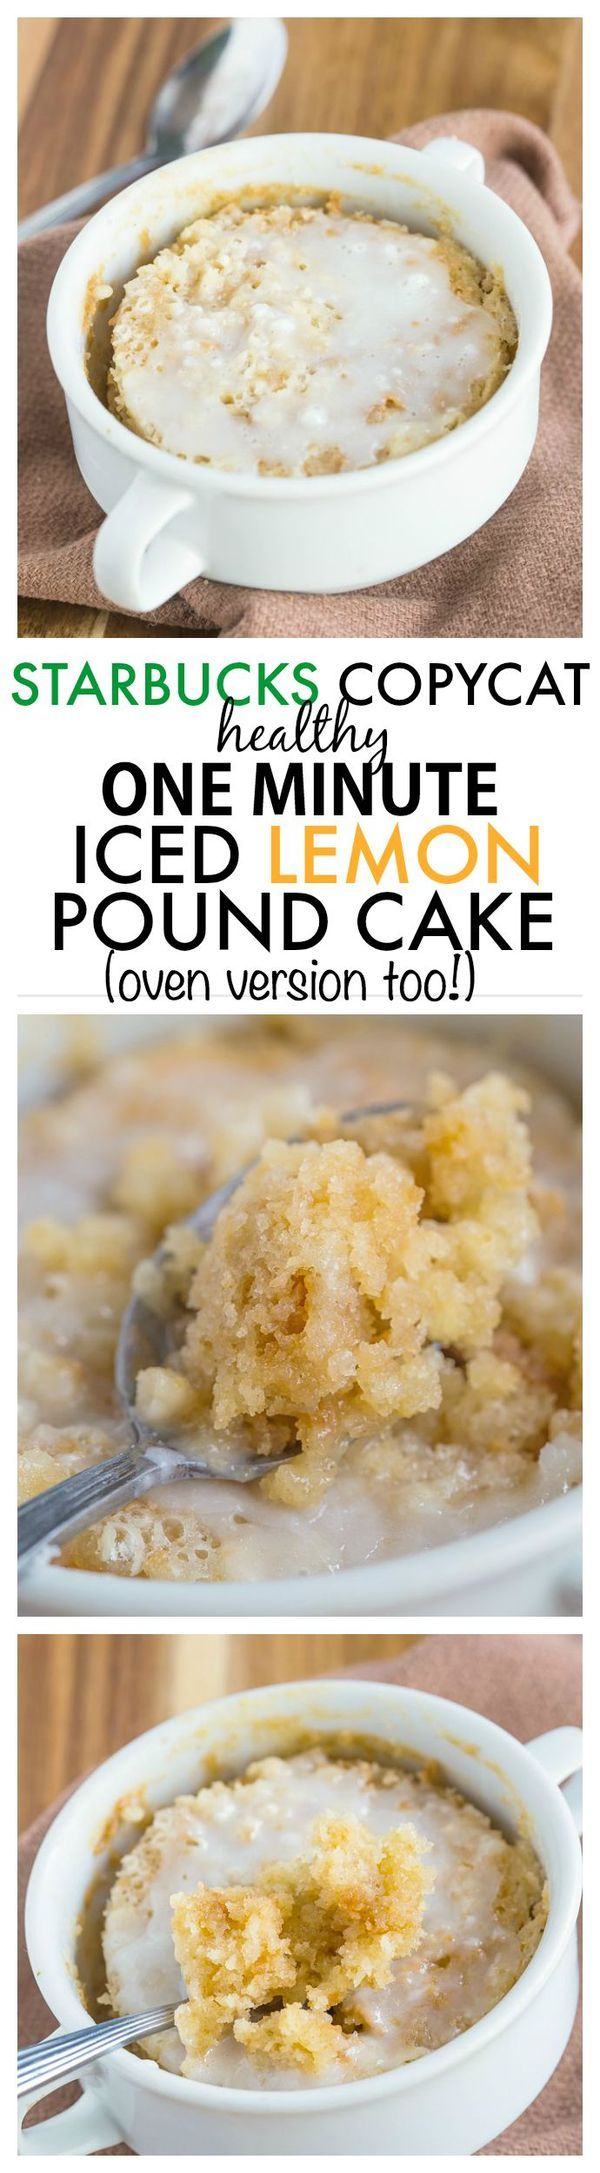 Gluten Free Iced Coffee Cake With Almond Flour